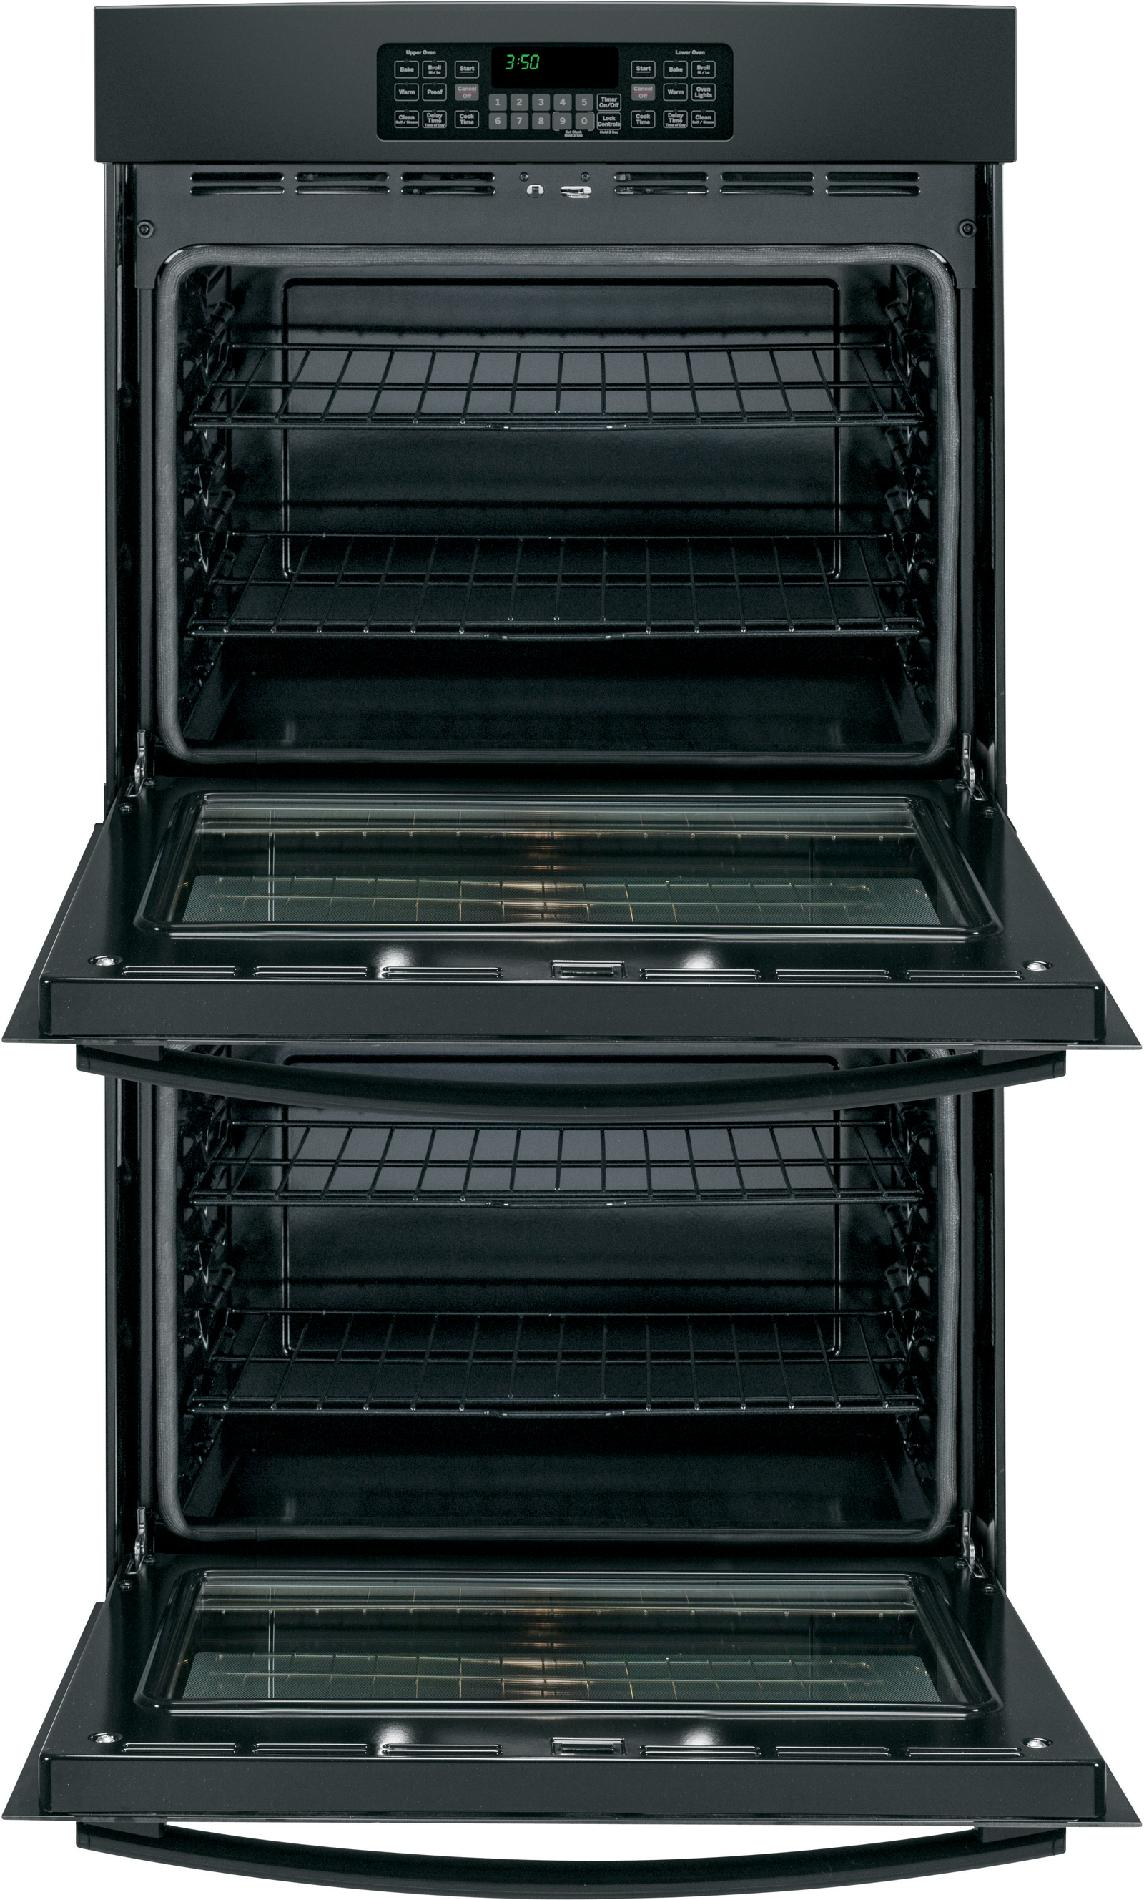 """GE 30"""" Double Electric Wall Oven - Black"""